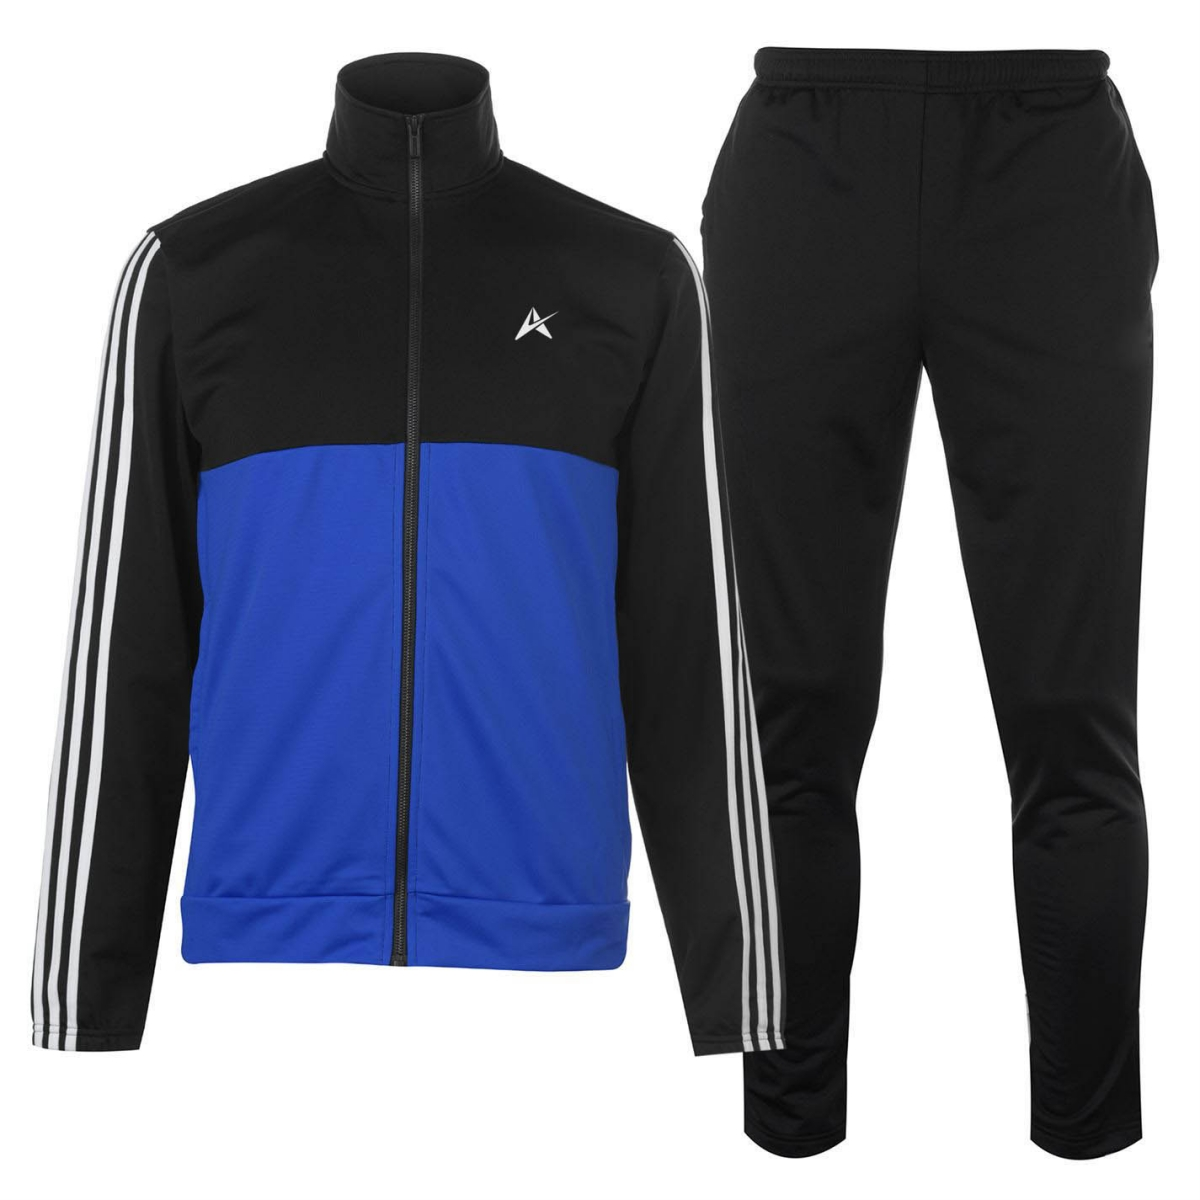 Men's Jogging Sports Suit Long Sleeve  A1-511